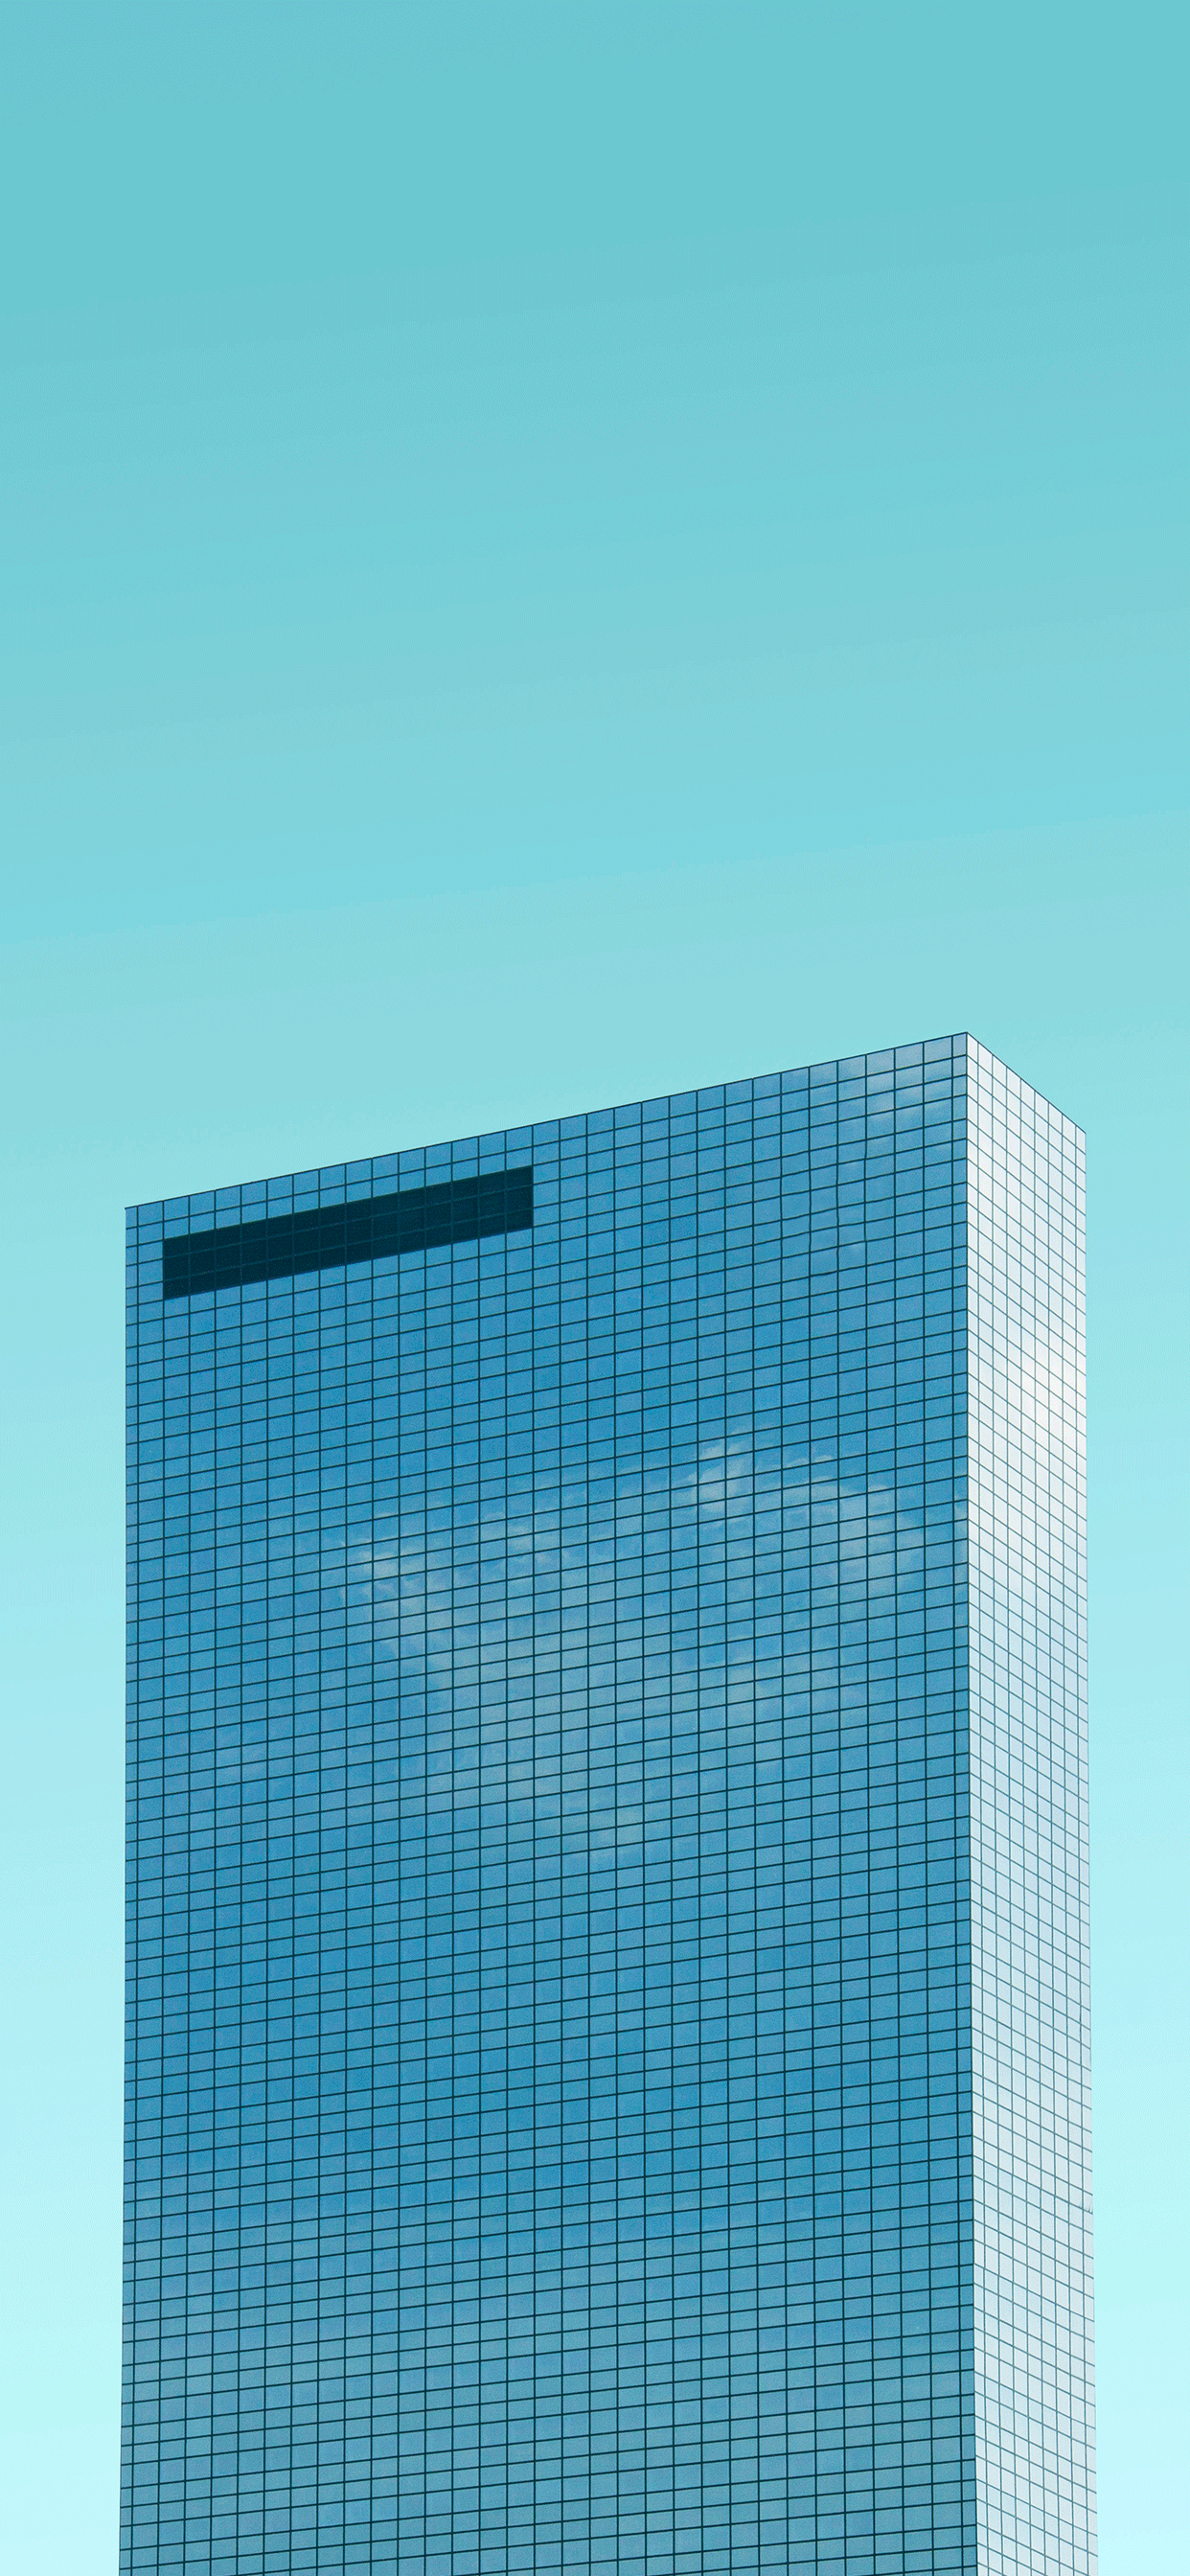 iPhone wallpaper blue background building Fonds d'écran iPhone du 06/05/2019